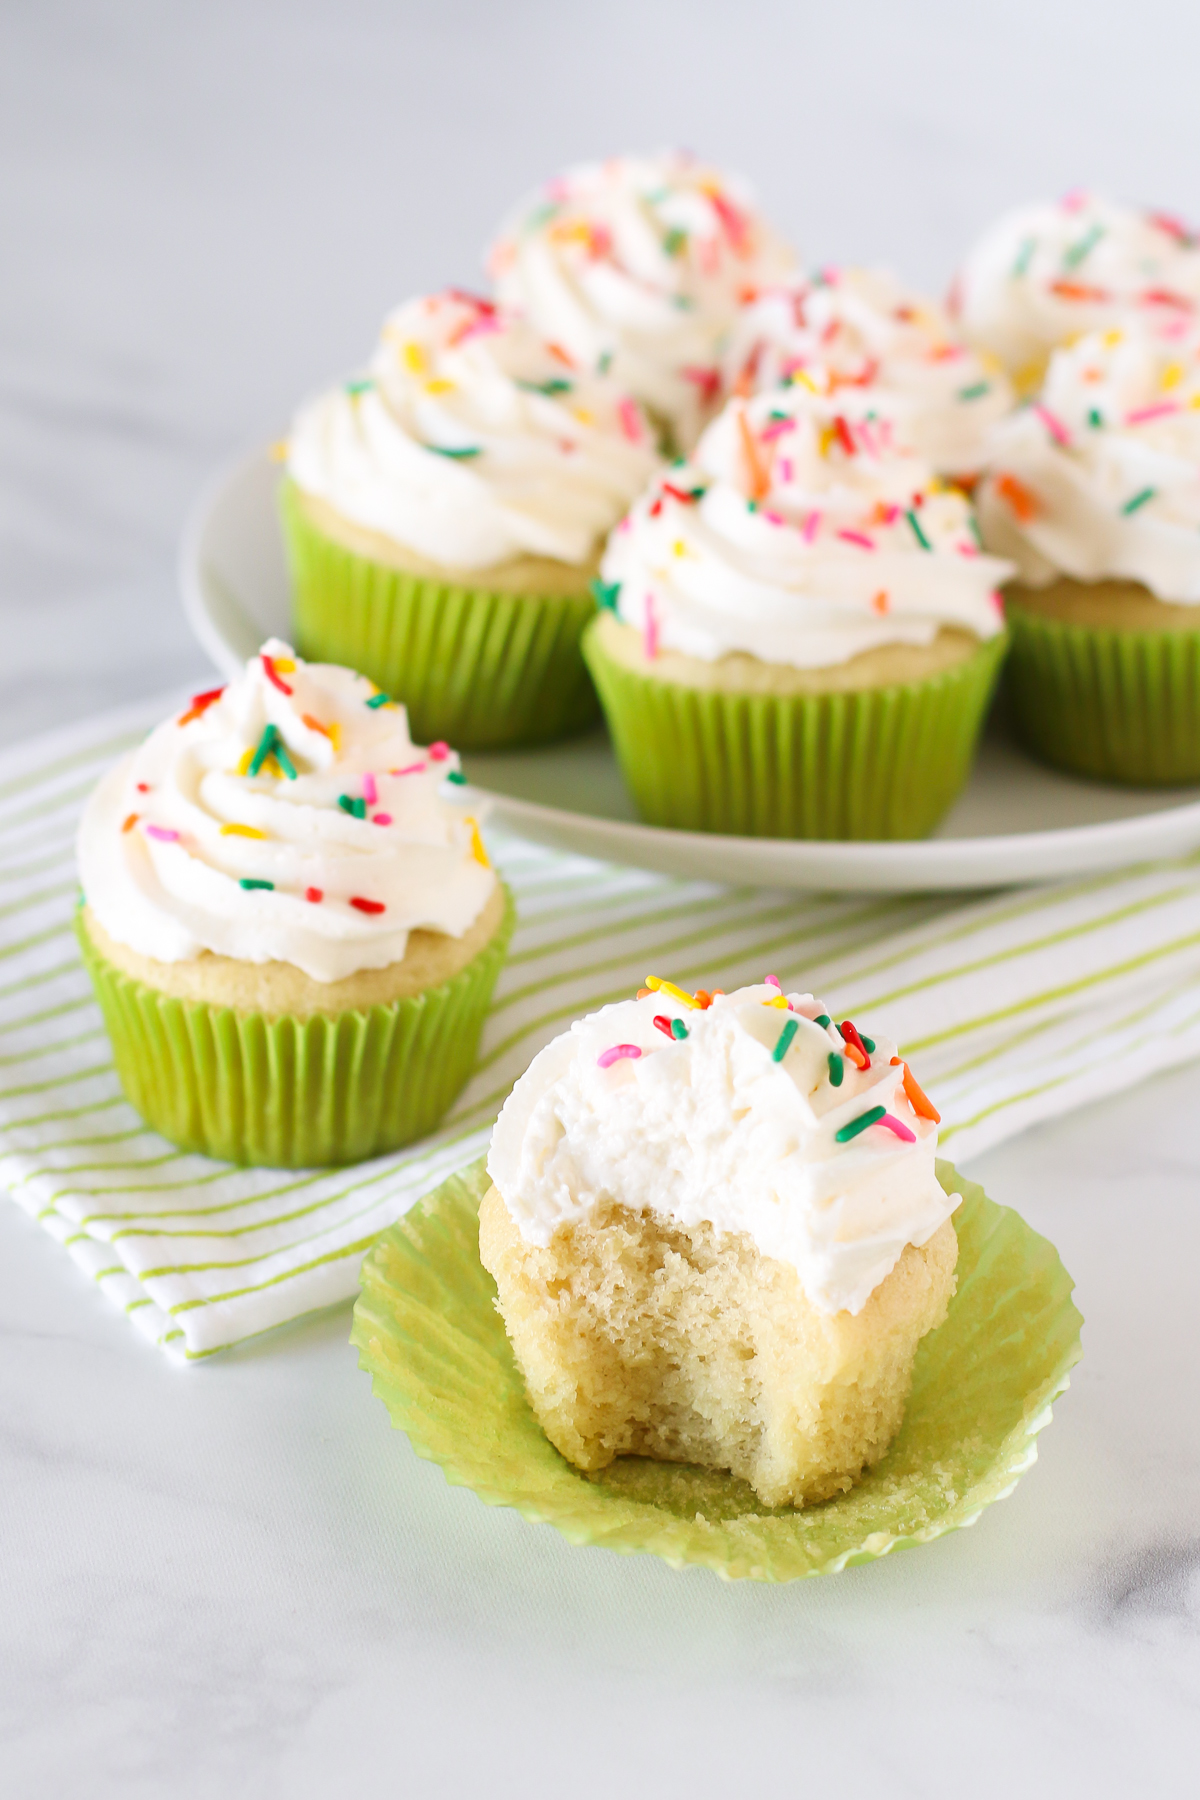 Gluten Free Vegan Vanilla Cupcakes. Light, fluffy cupcakes with a whipped, creamy vanilla buttercream. Allergen free and perfect for any celebration!